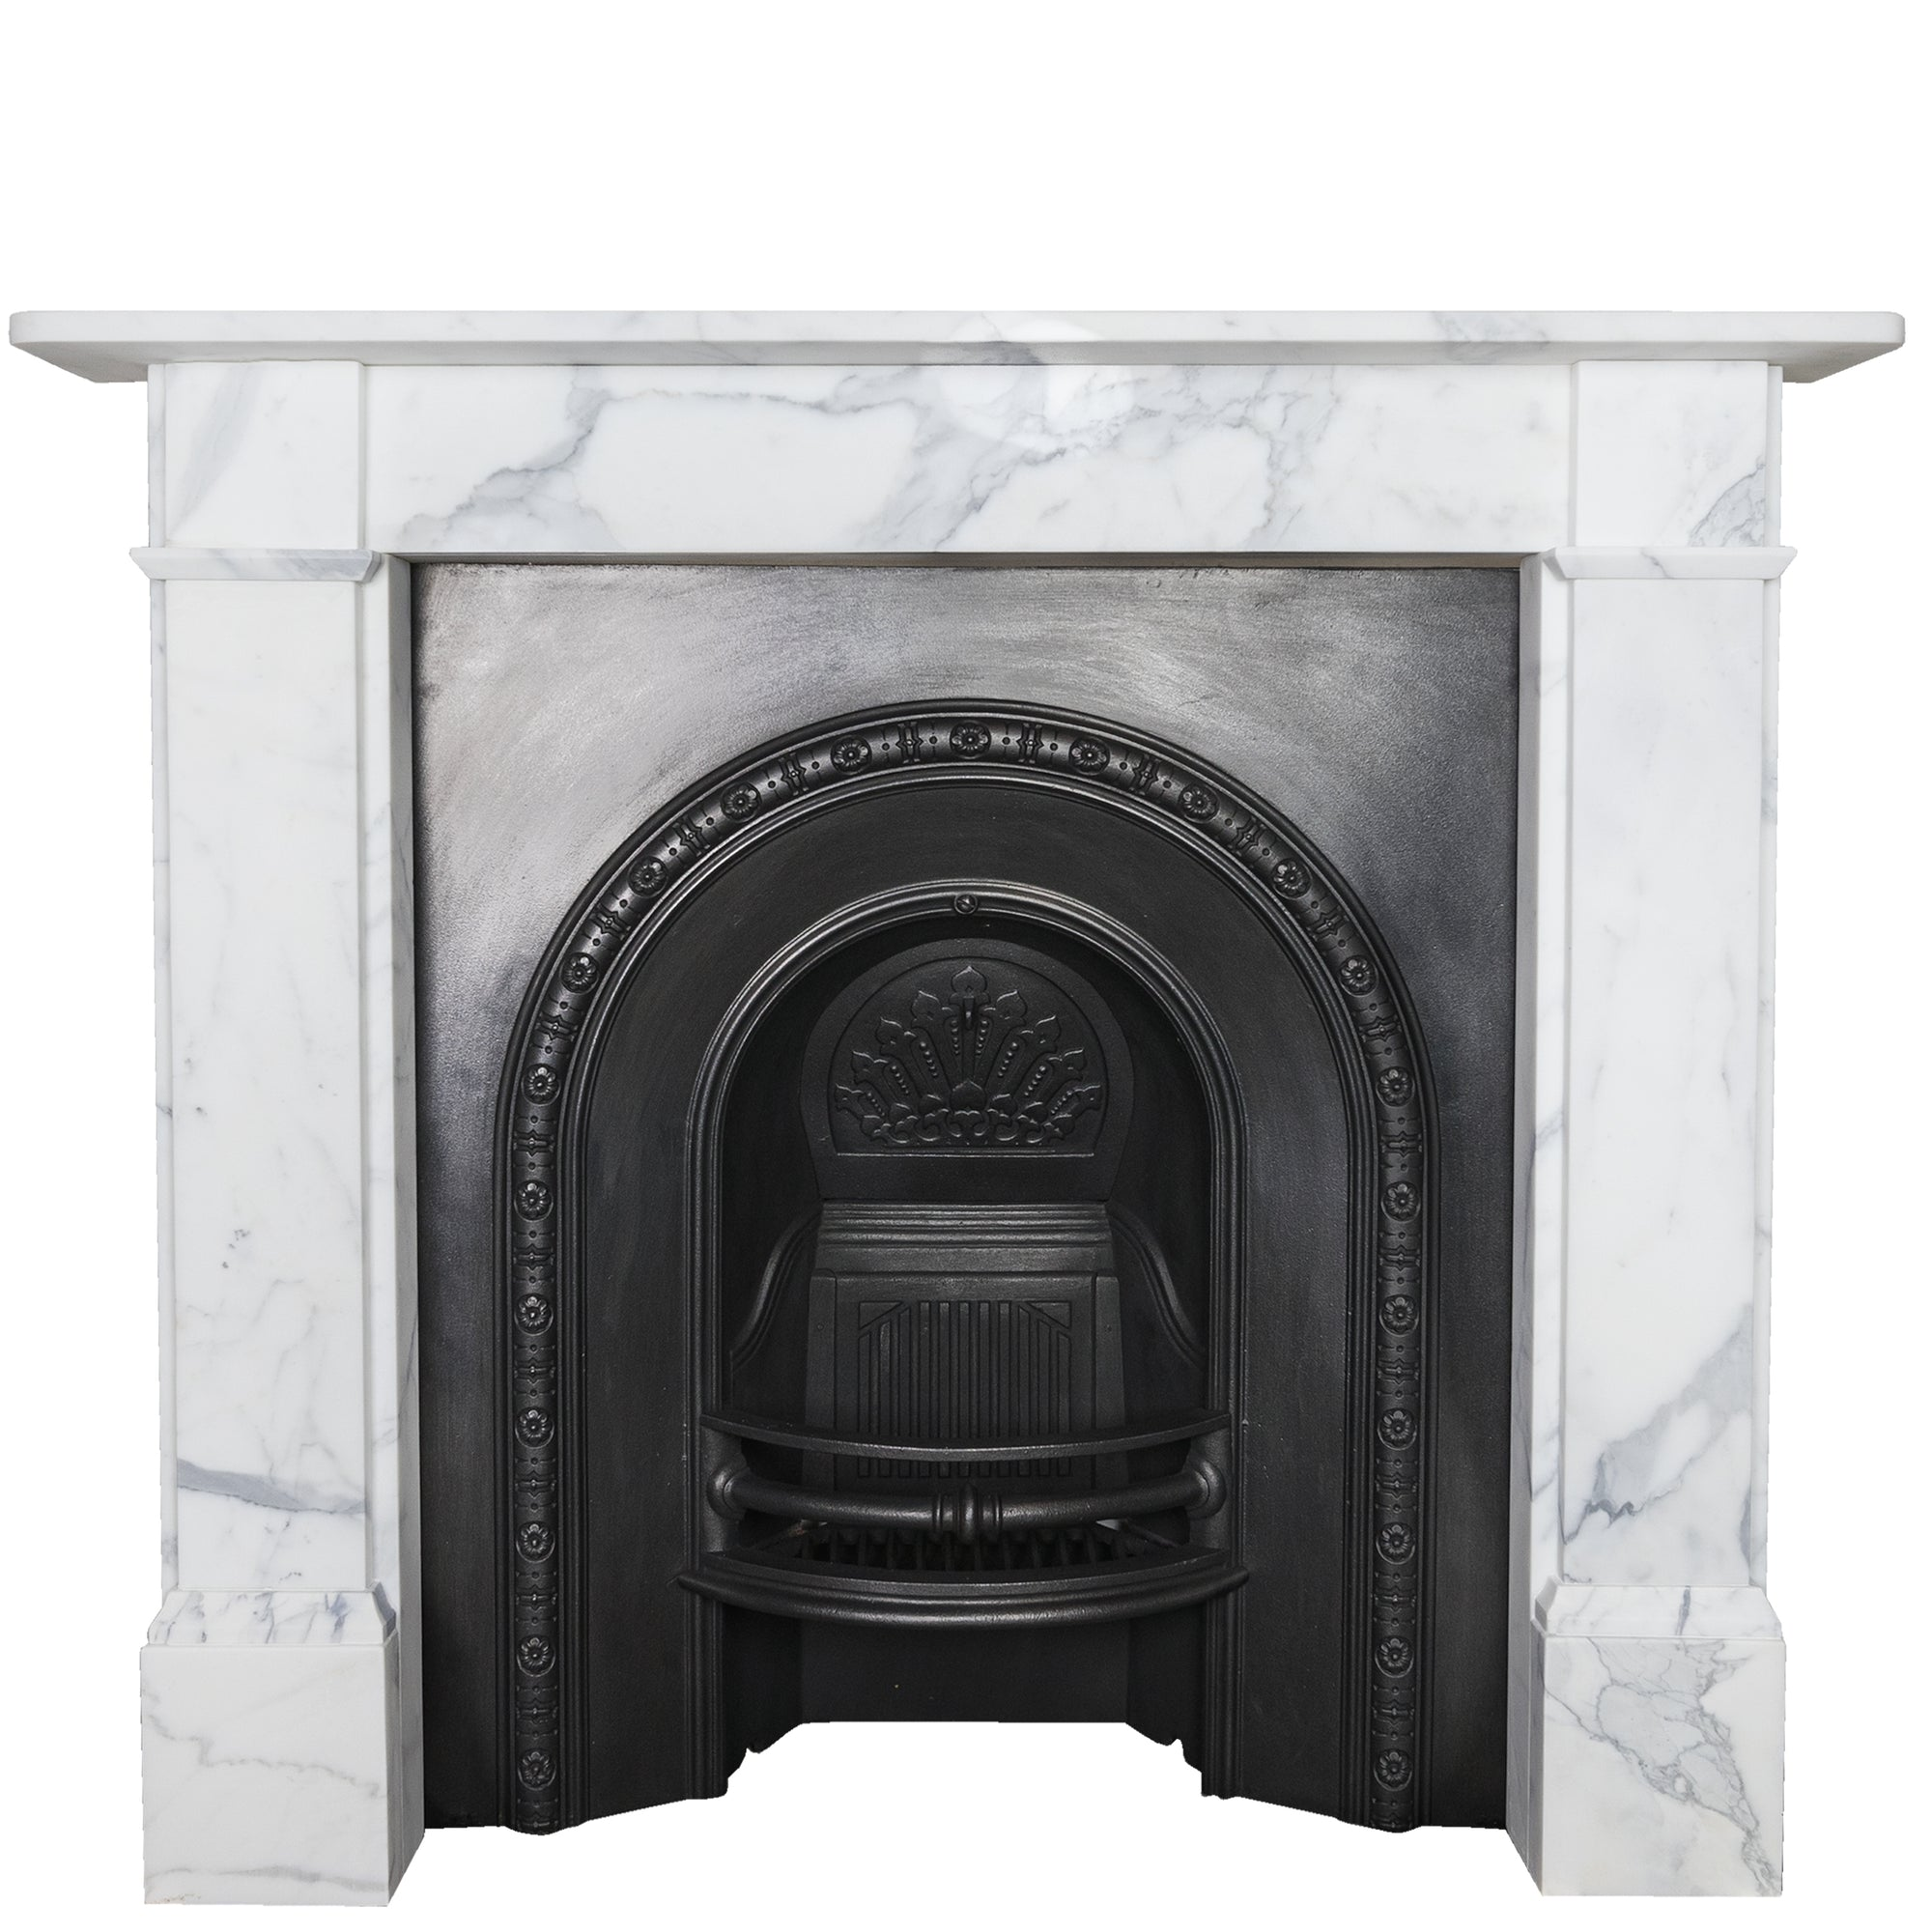 Simplistic Arabesque Marble Fireplace Surround | The Architectural Forum